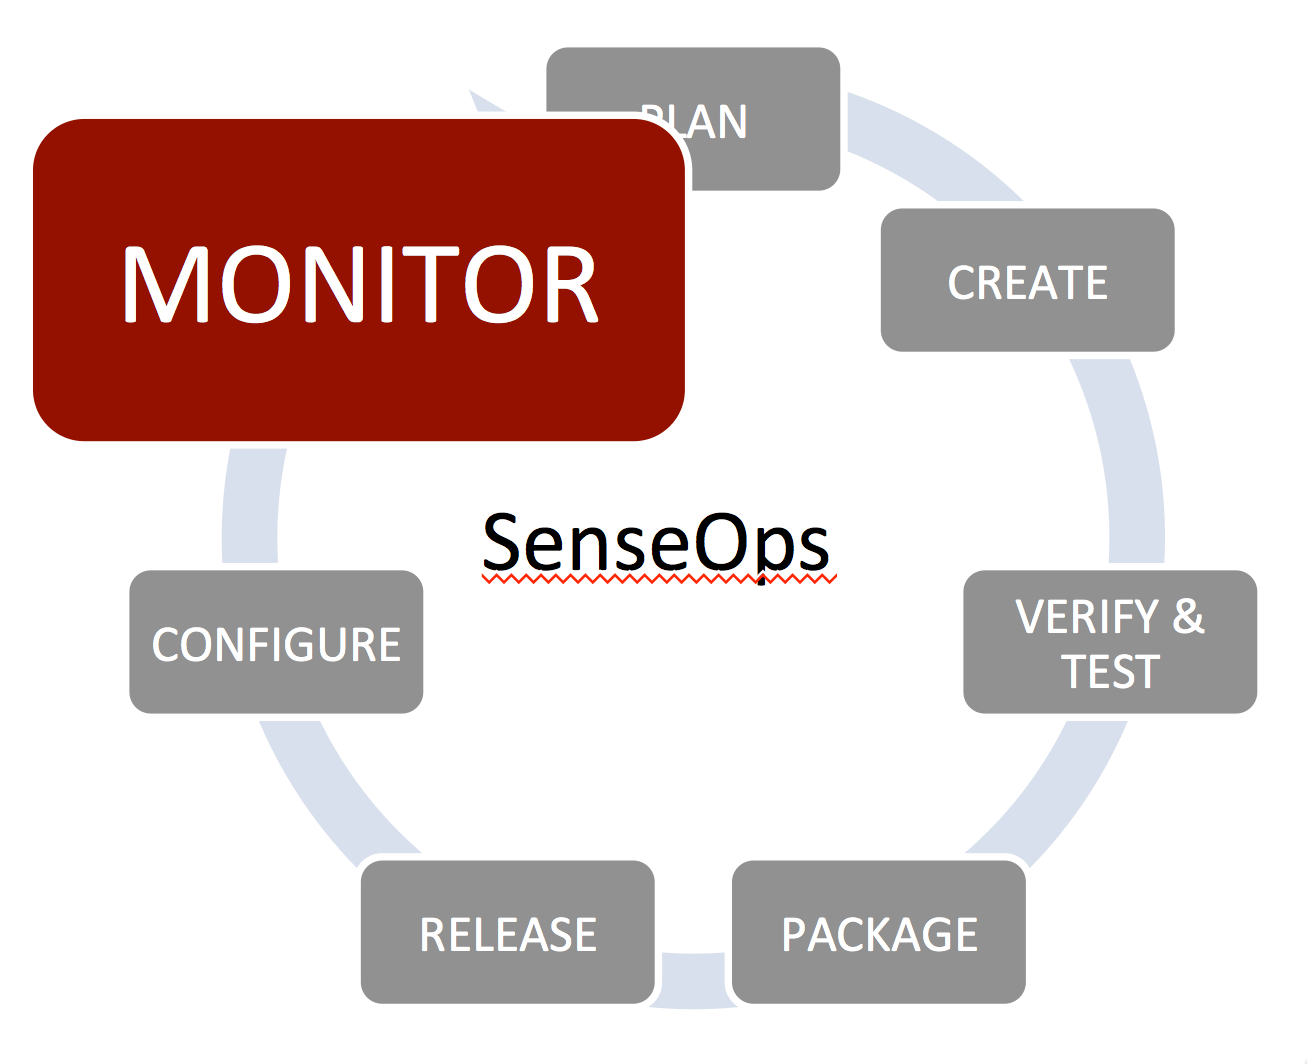 Monitoring and auto-starting Node js services on Windows Server